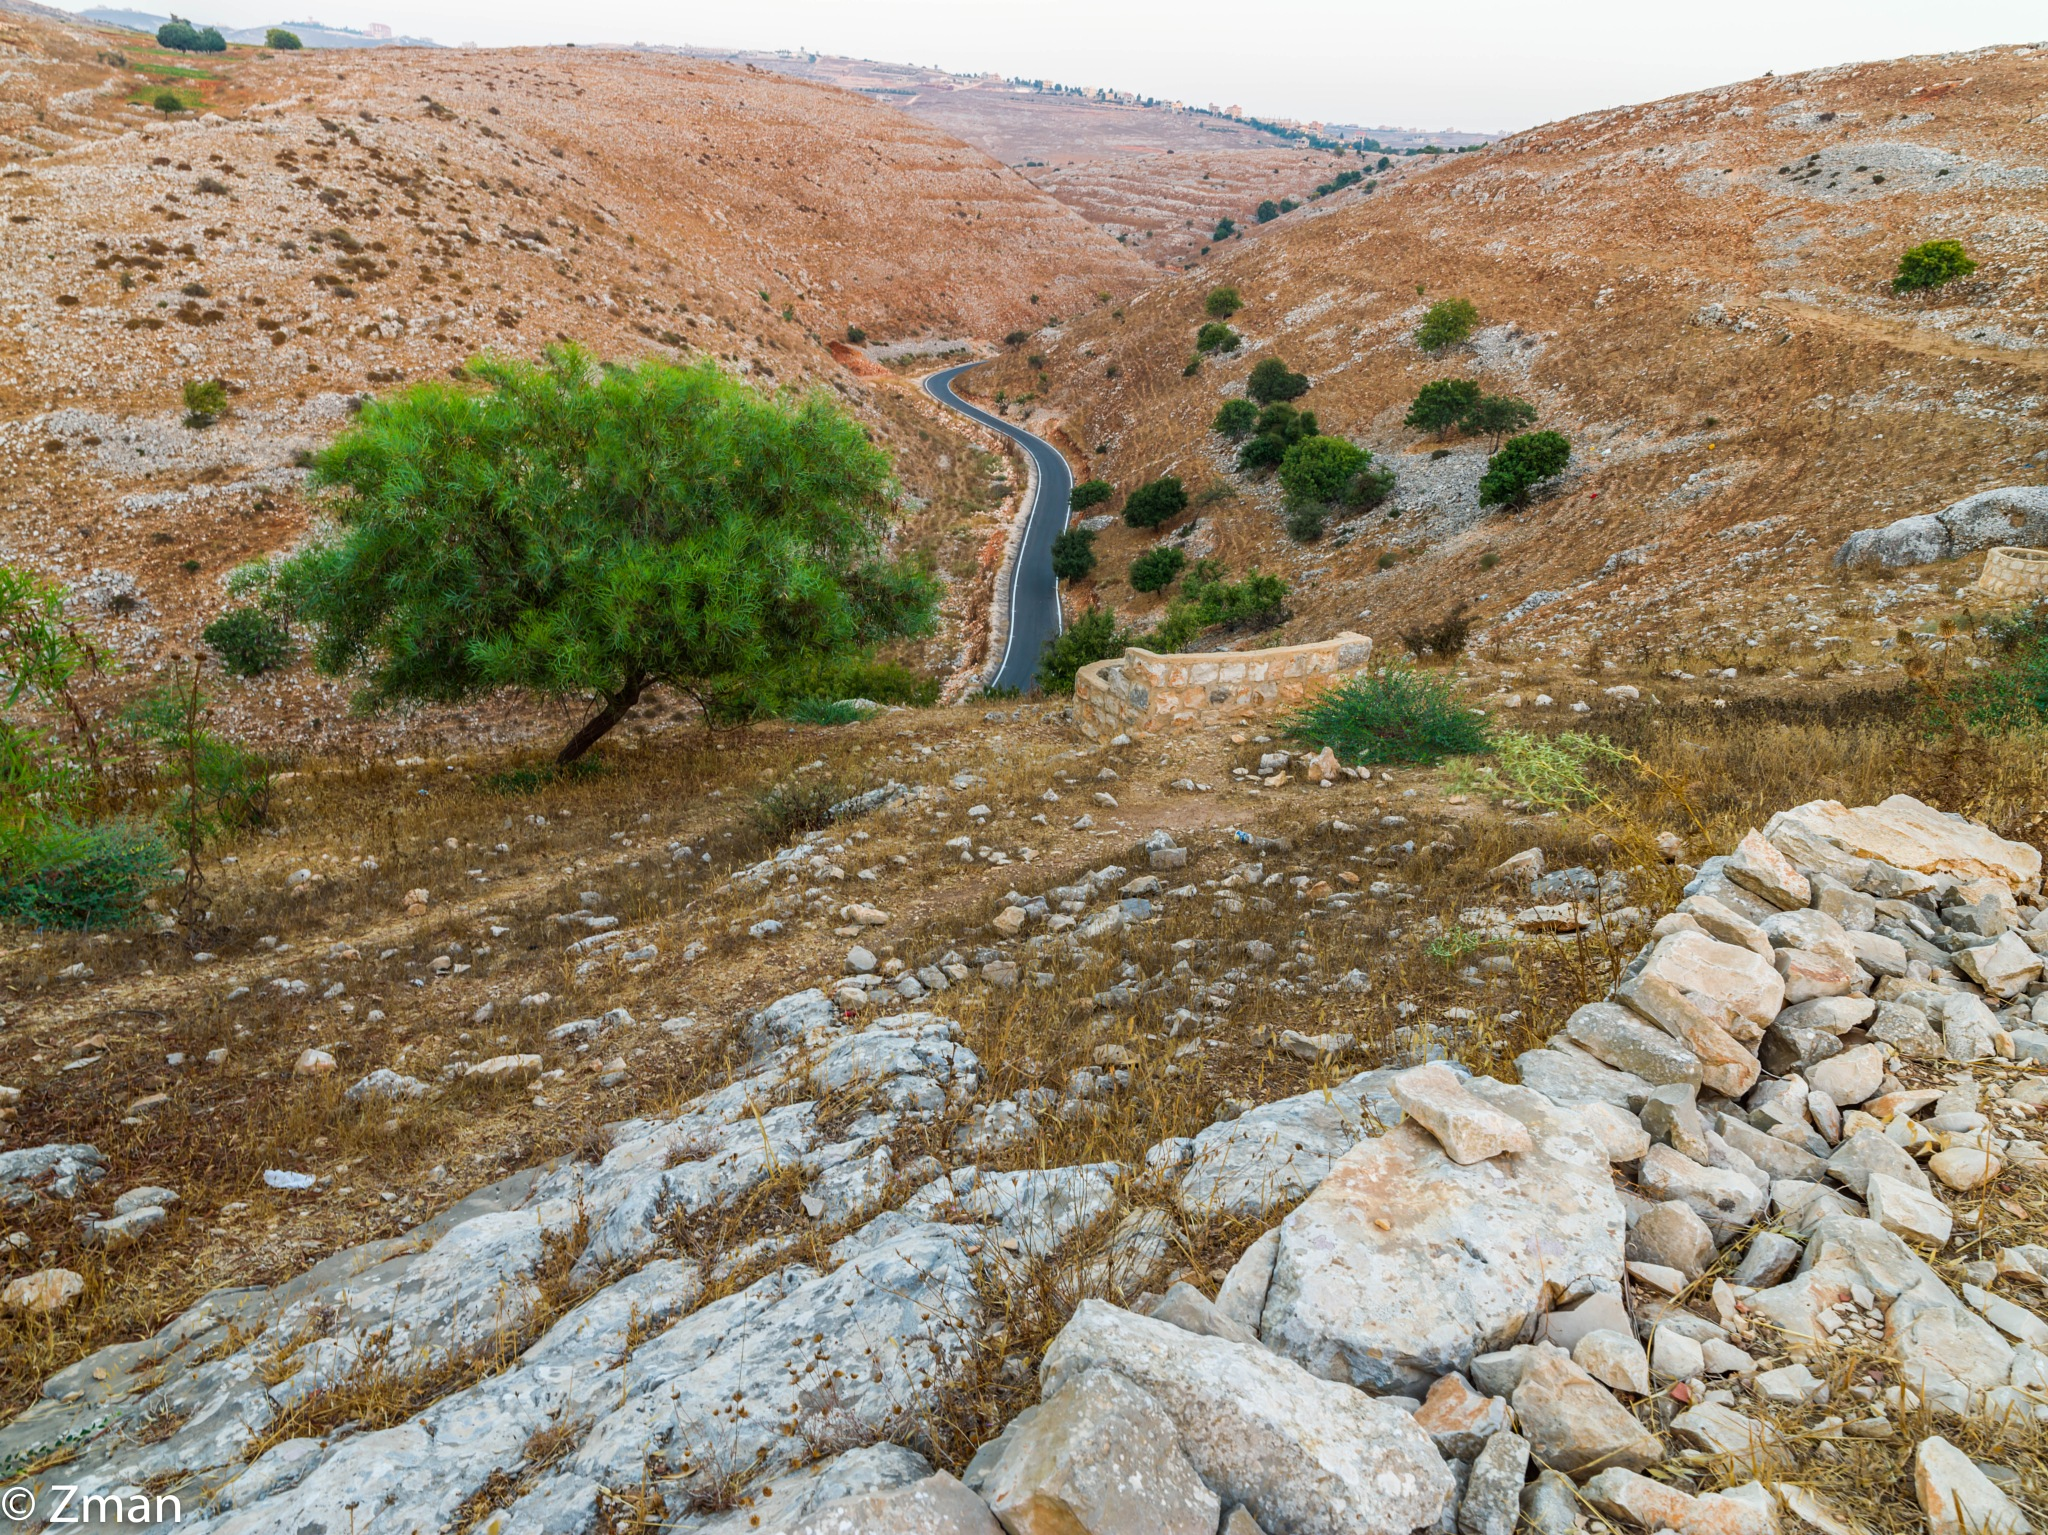 The Winding Road by muhammad.nasser.963